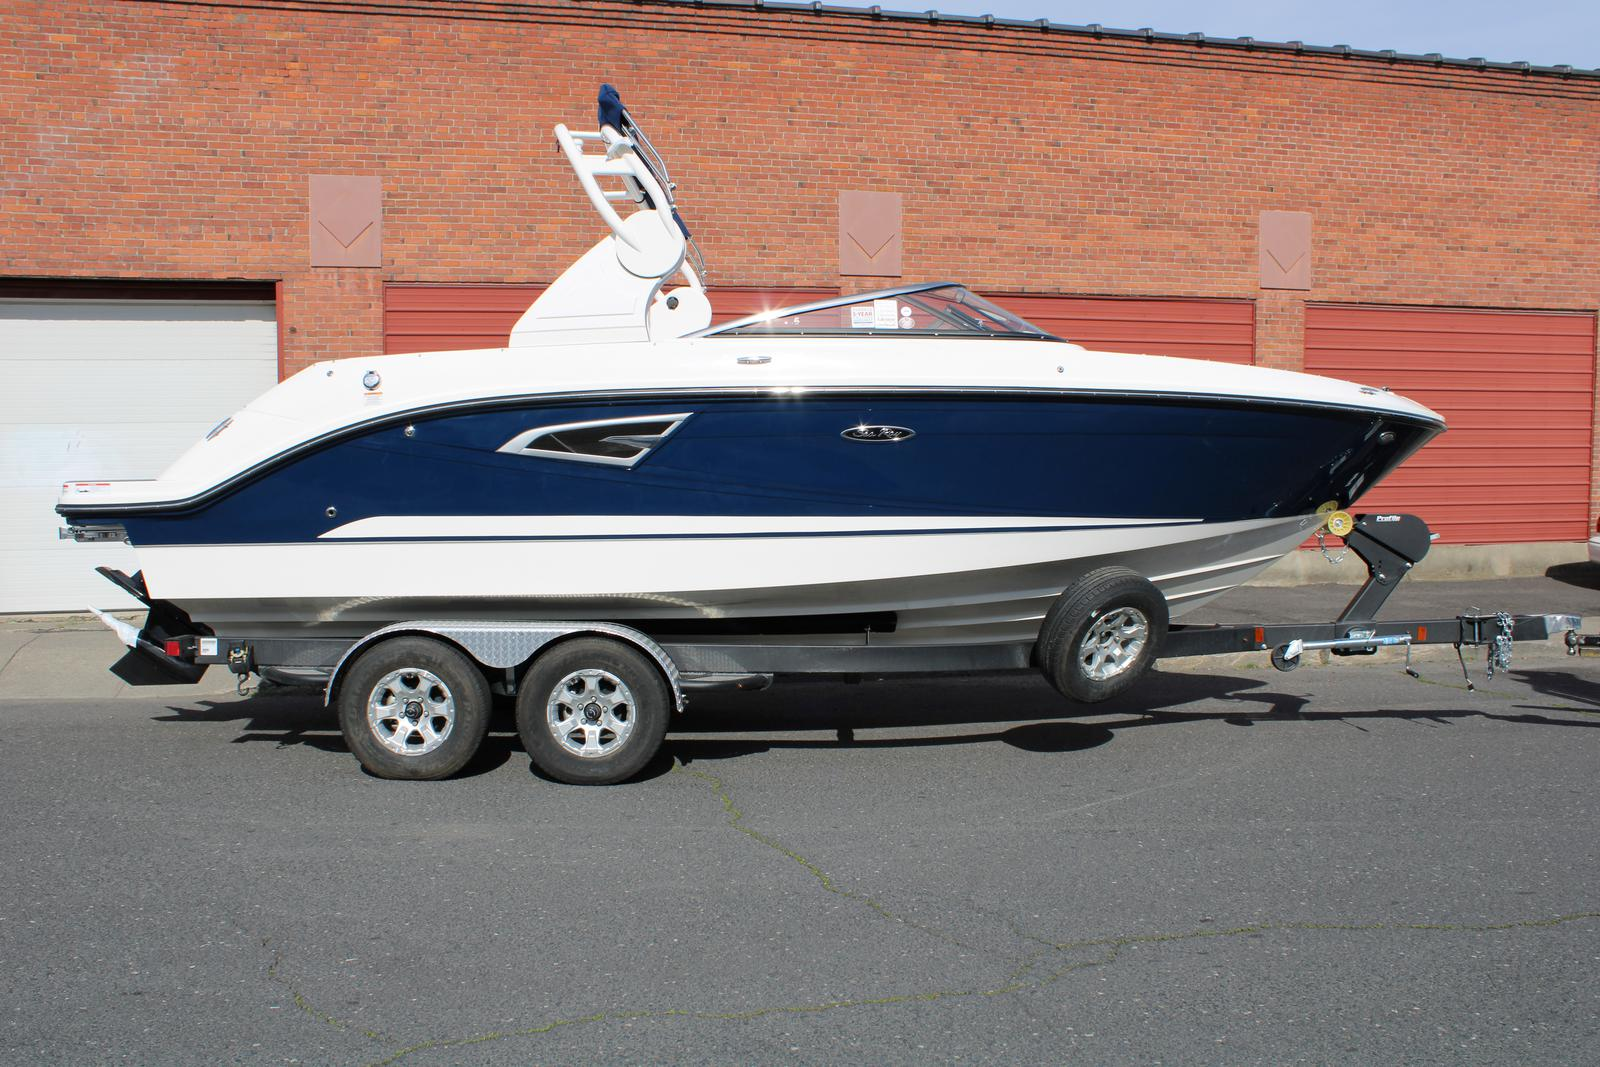 2019 Sea Ray boat for sale, model of the boat is 230 SLX & Image # 1 of 6